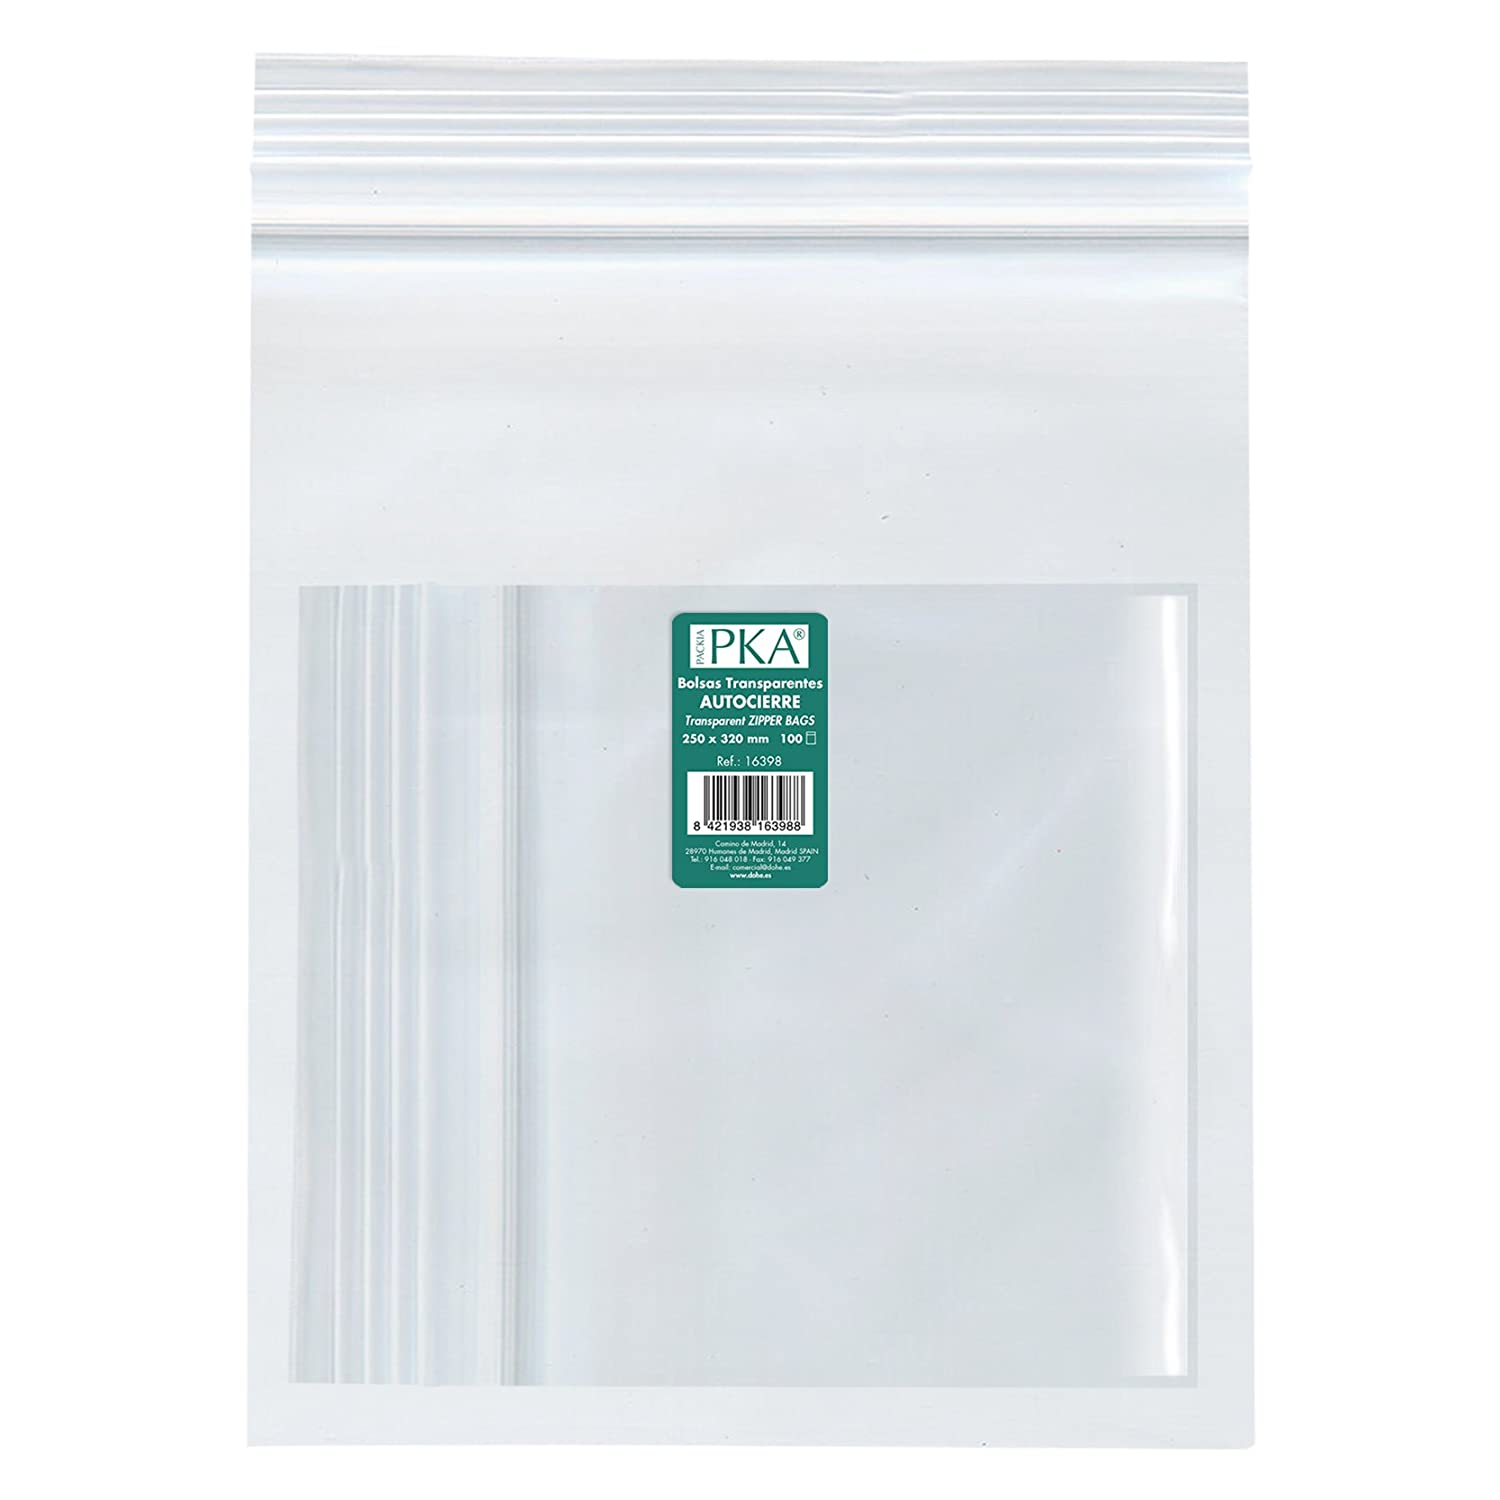 PKA 16398  –   Pack of 100  Resealable Plastic Bags, 250  x 320  mm 250 x 320 mm Dohe